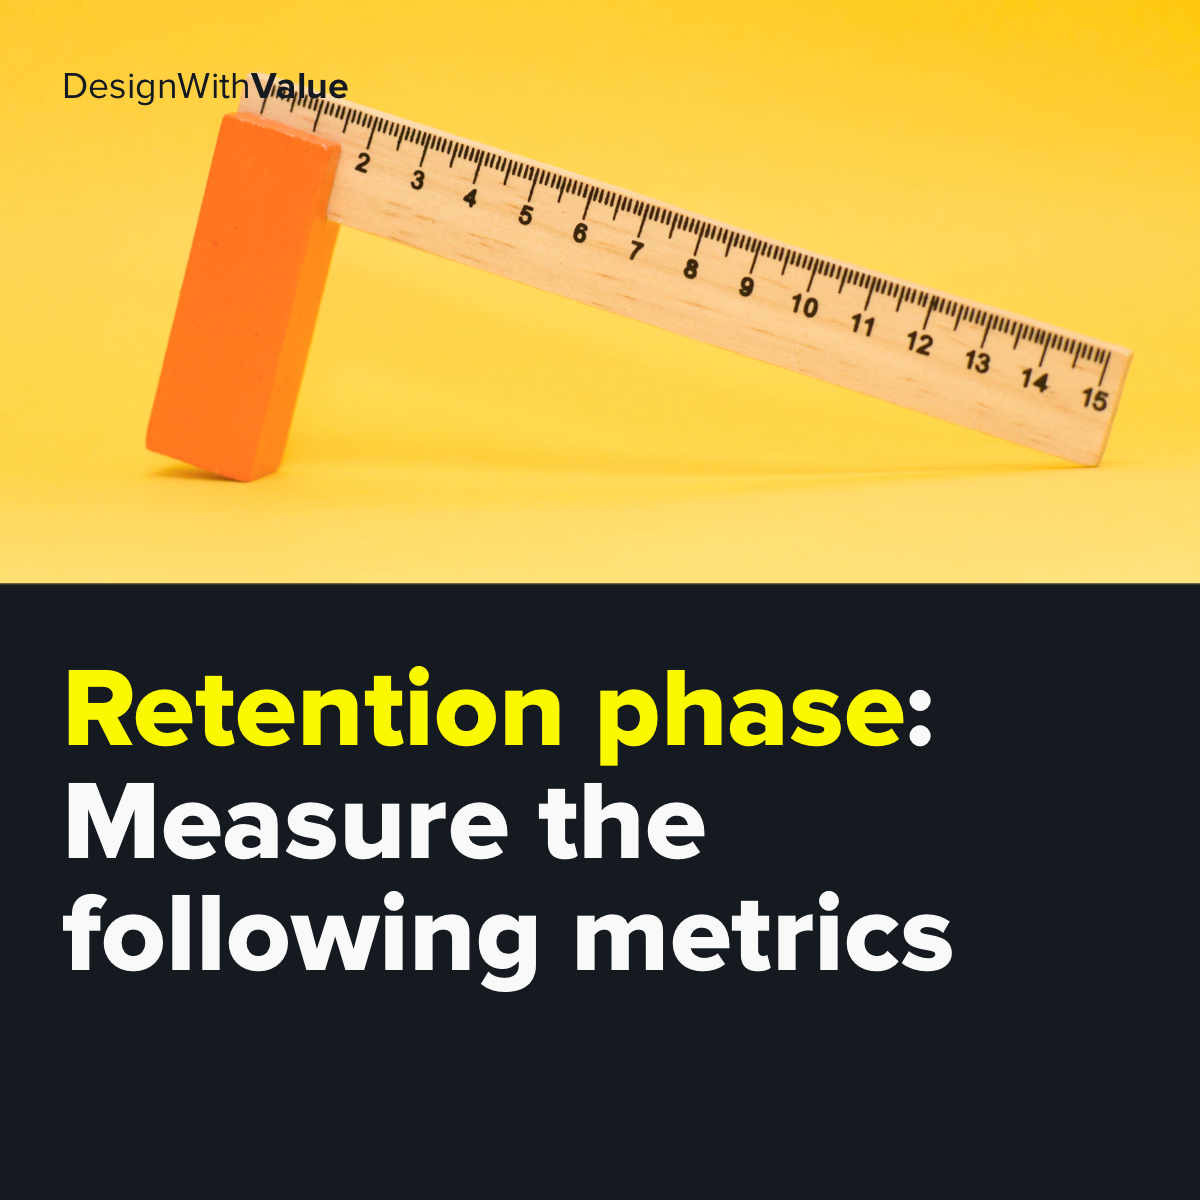 Measure the following metrics in the retention phase.